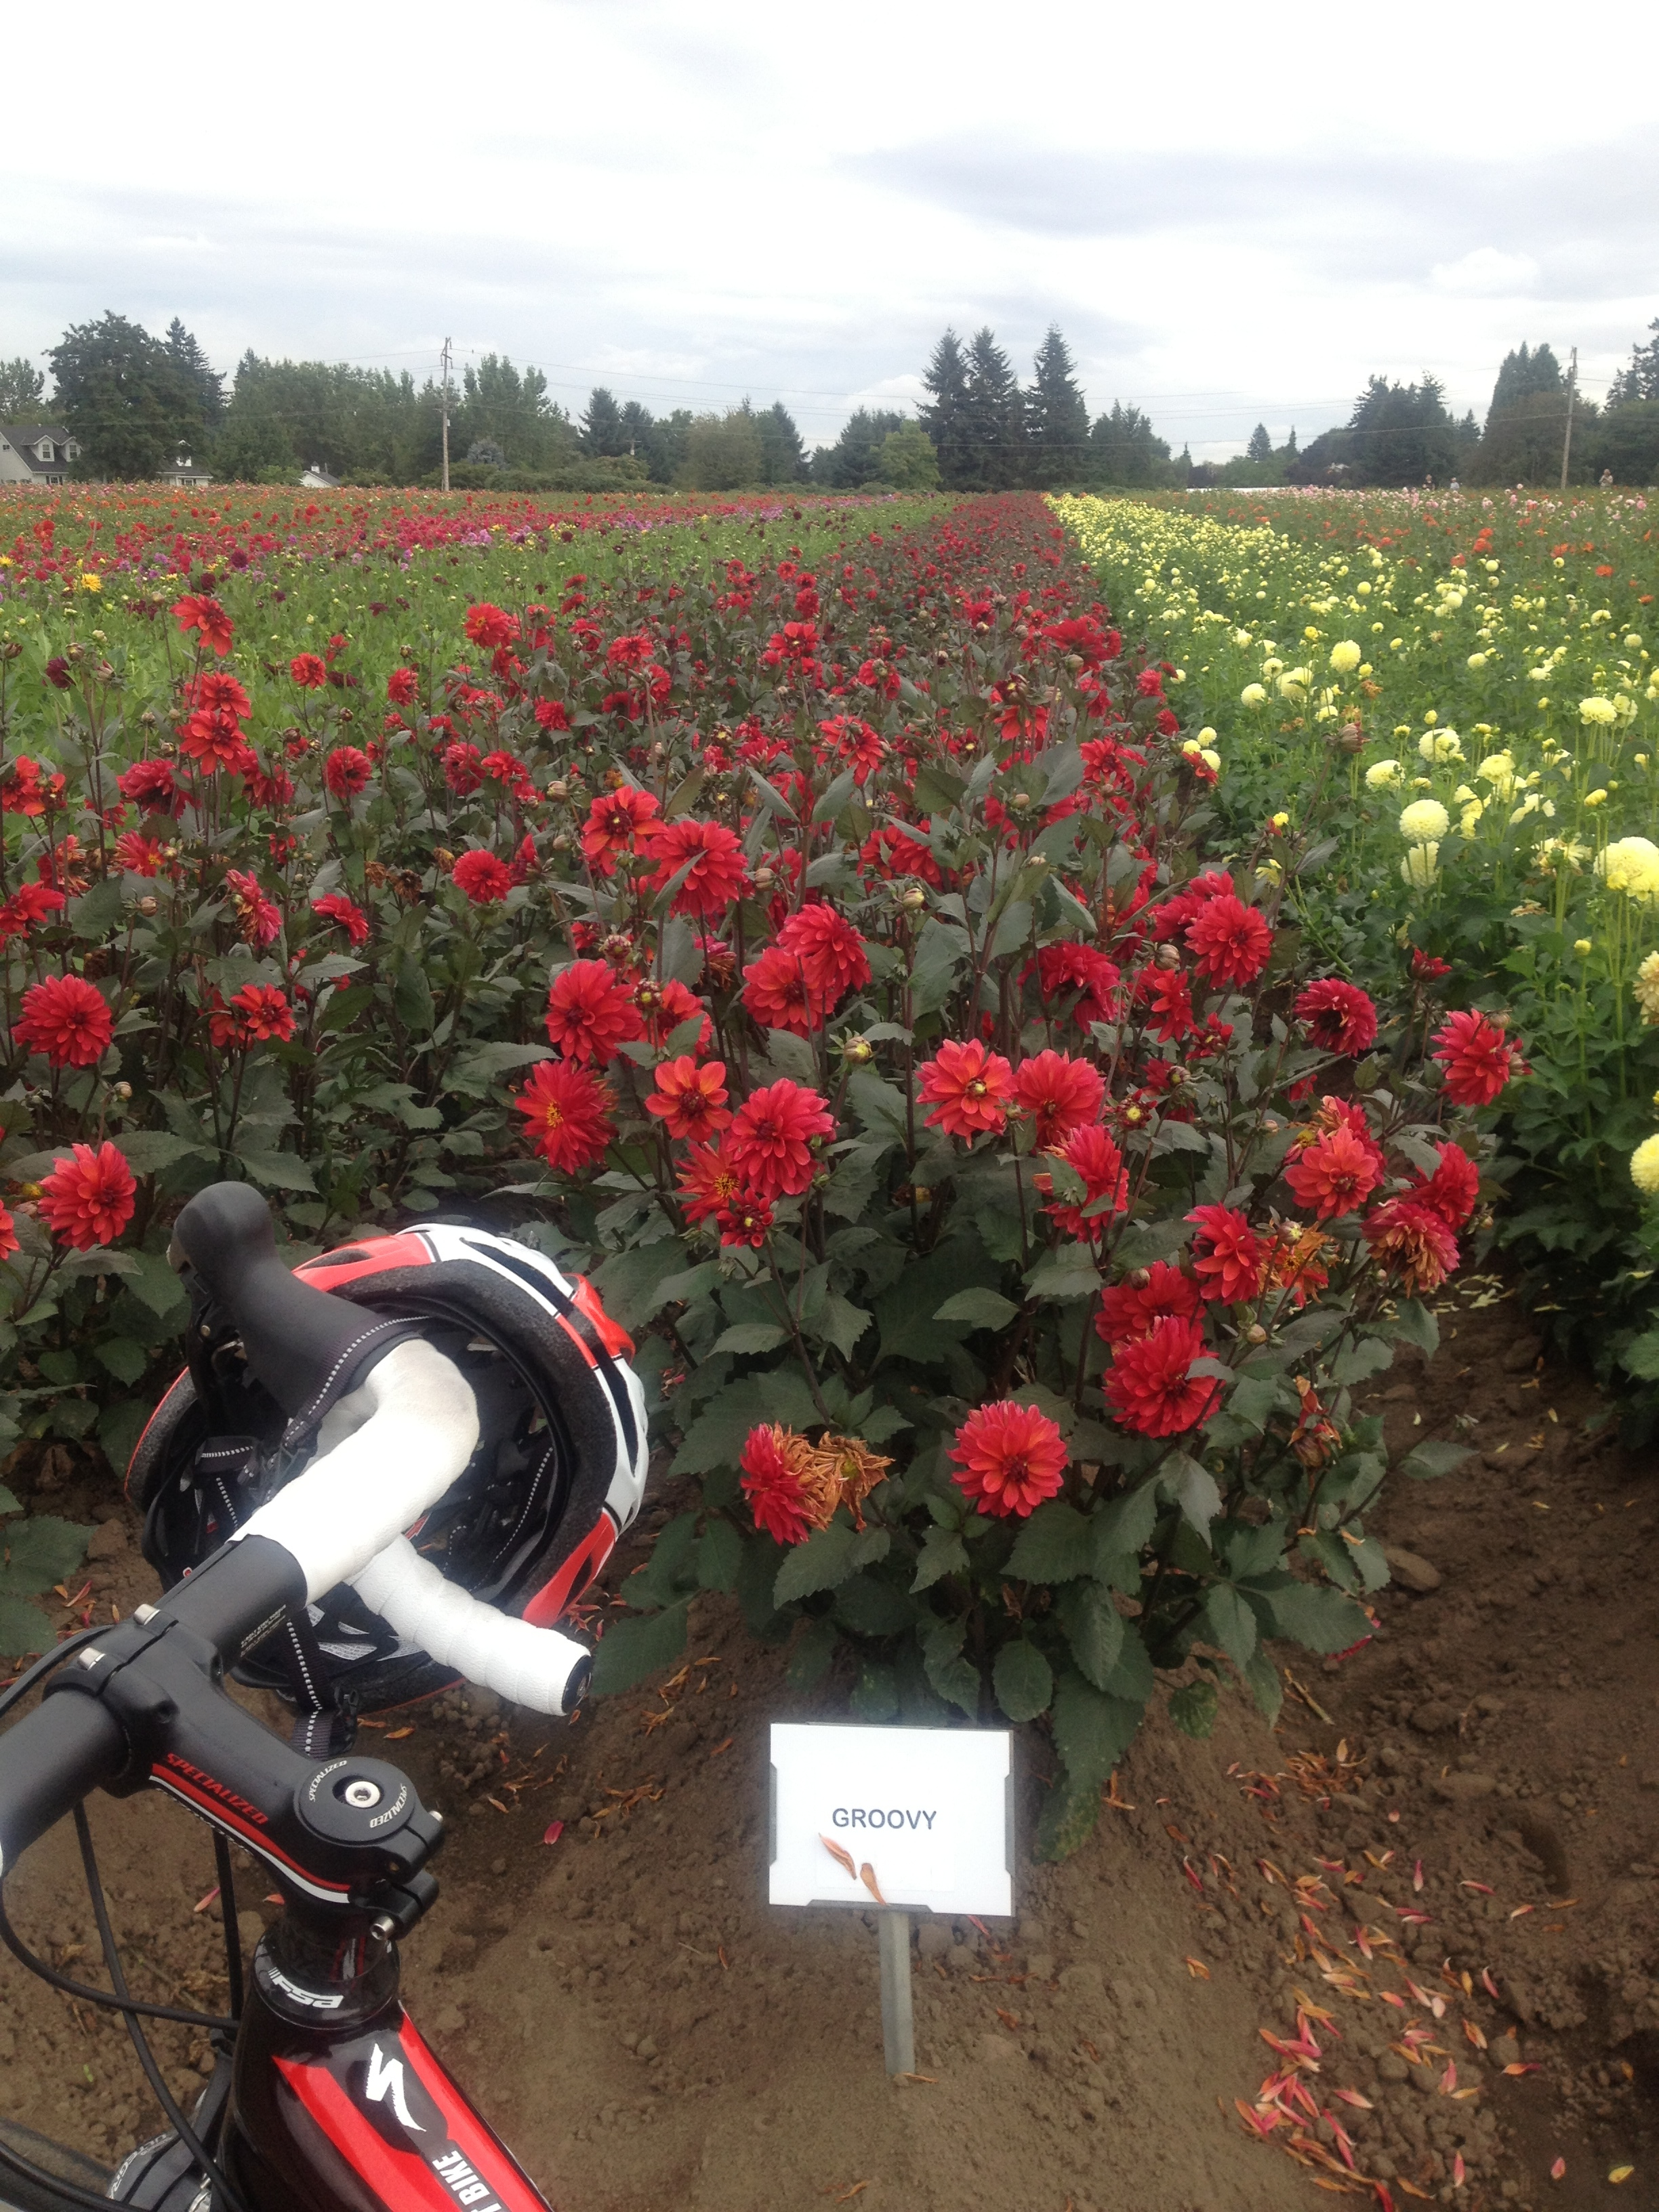 Dahlia Farm, near the Willamette Valley Scenic Bikeway